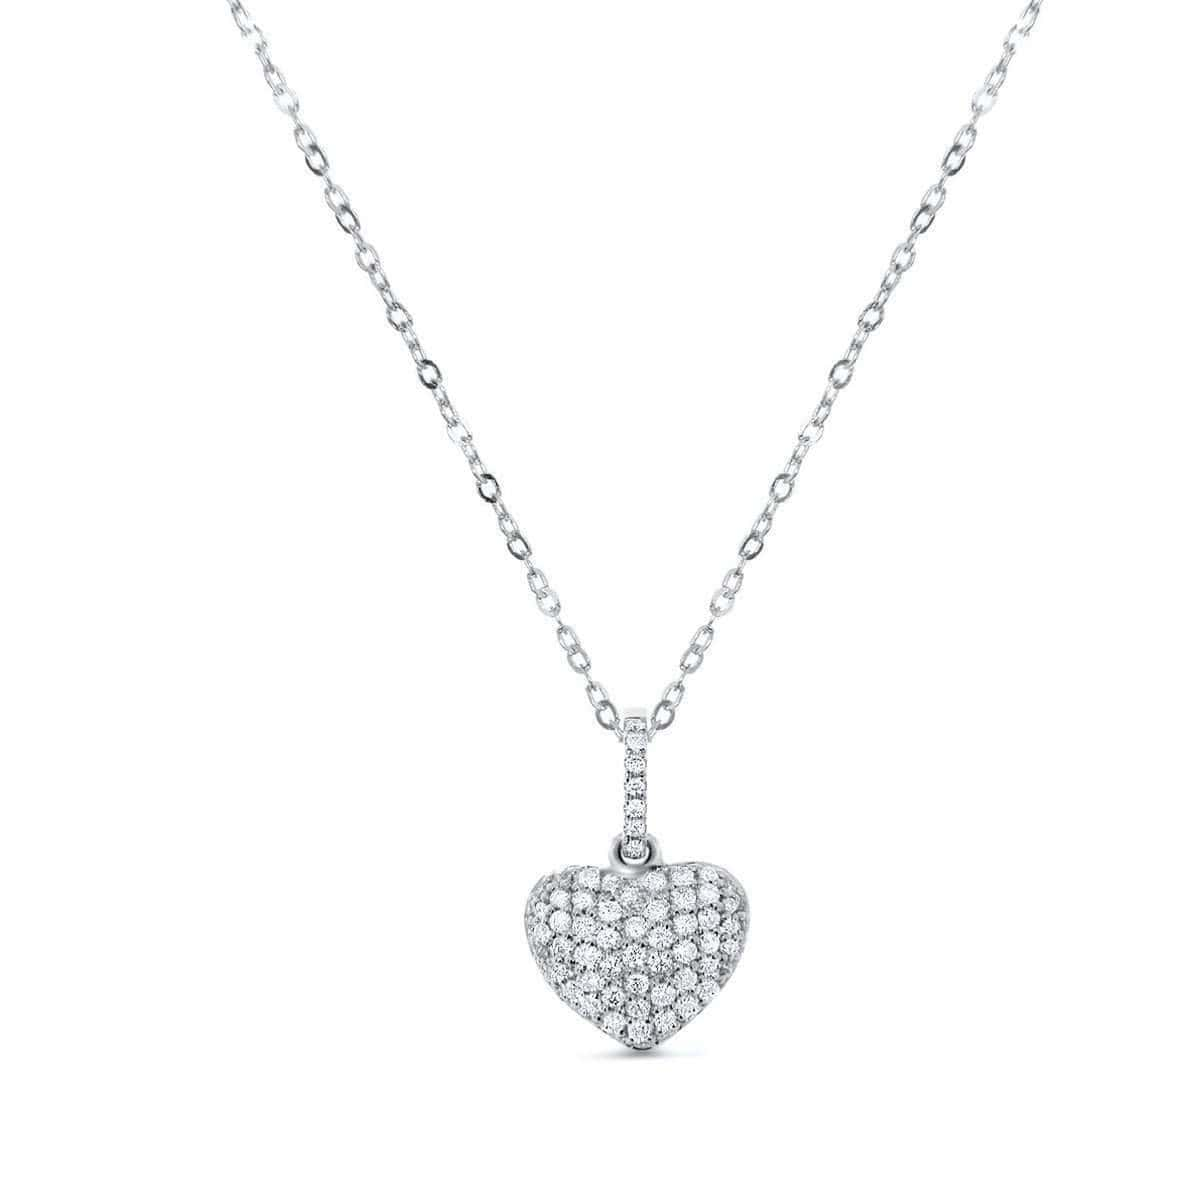 18kt White Gold Puffy Heart Necklace